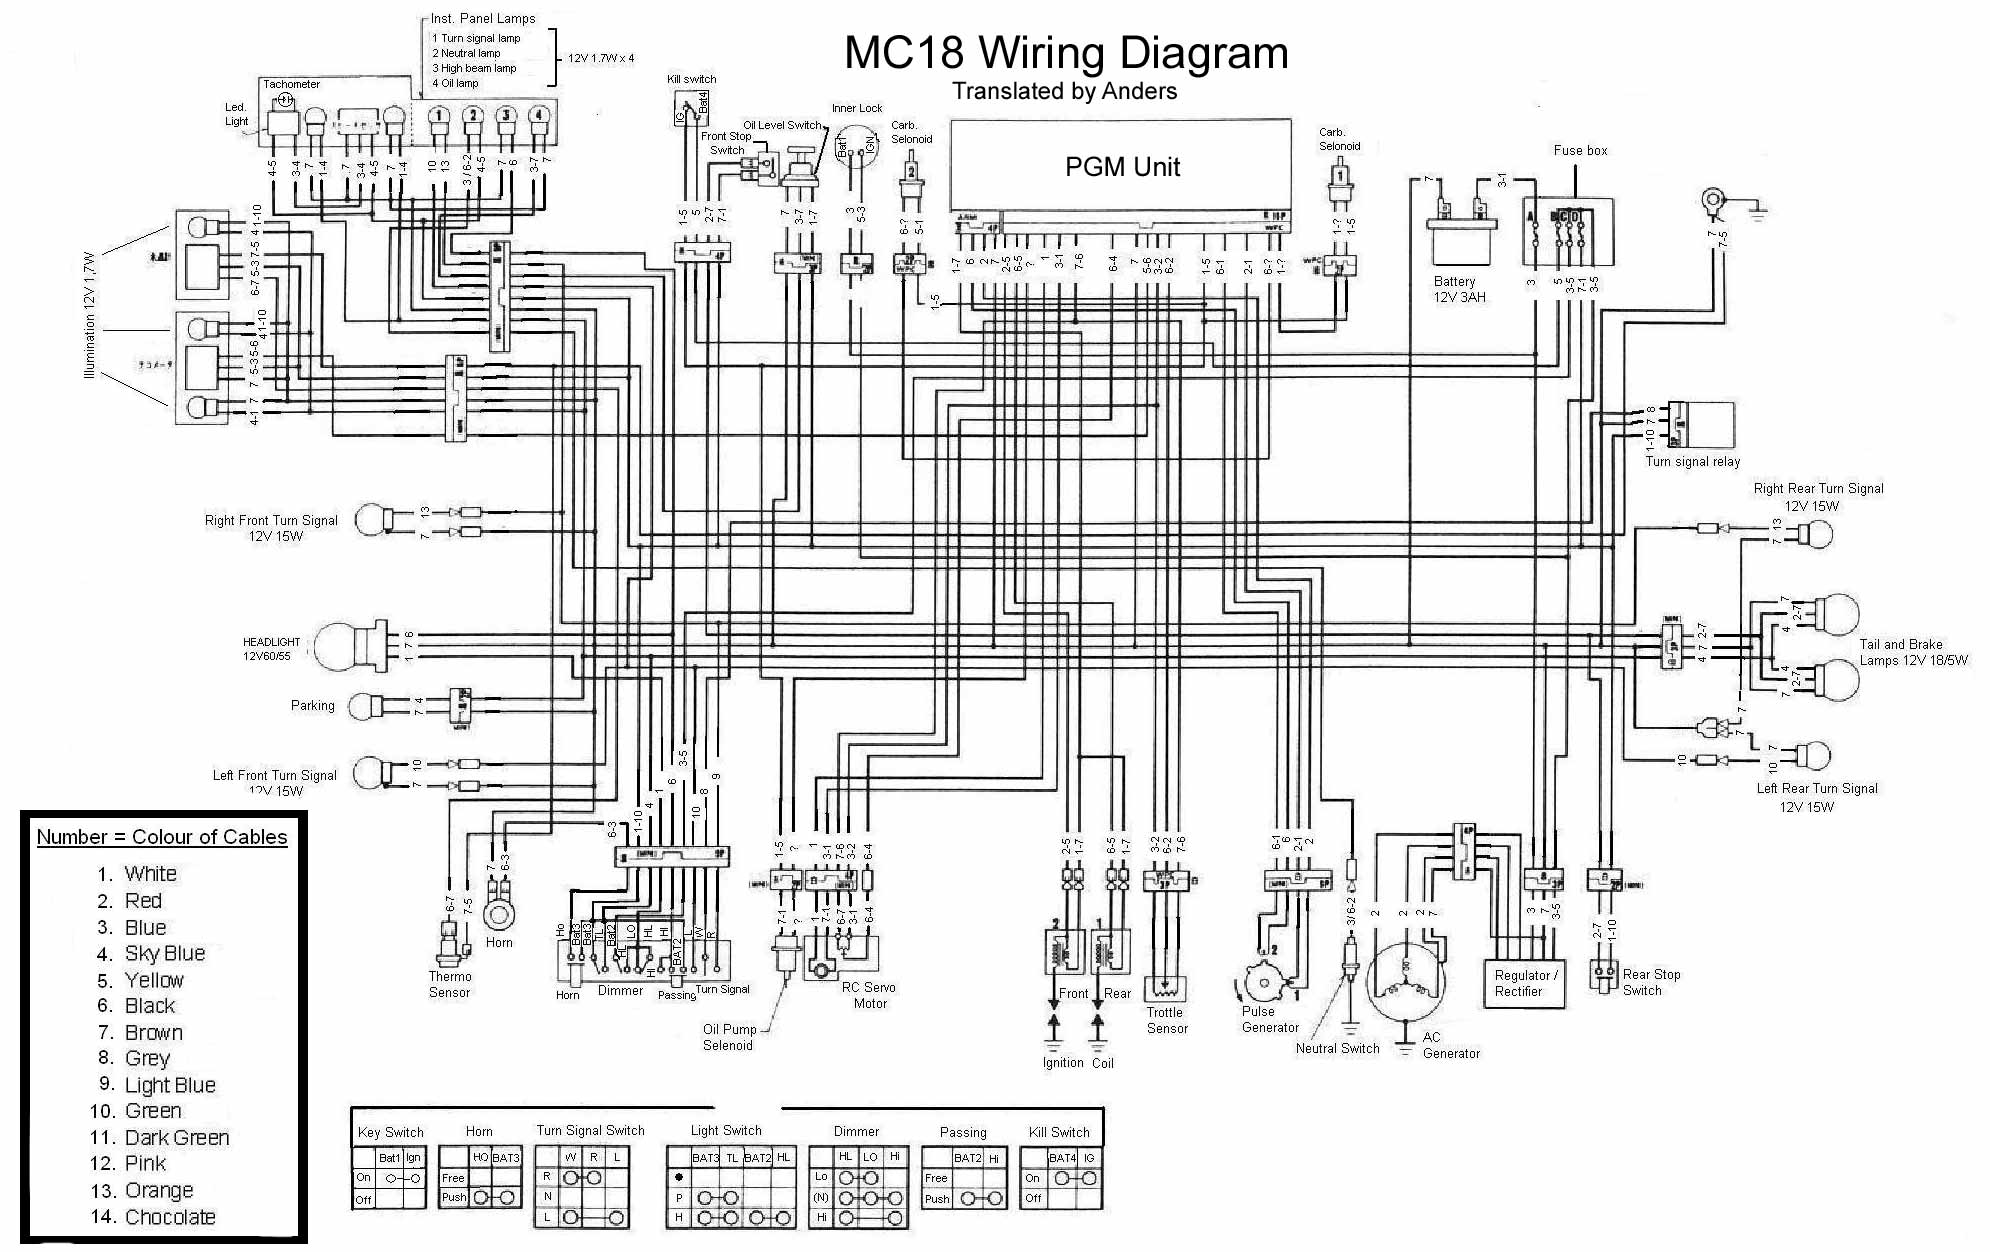 cbr 250 wiring diagram wiring diagram preview Electrical Wiring Diagrams